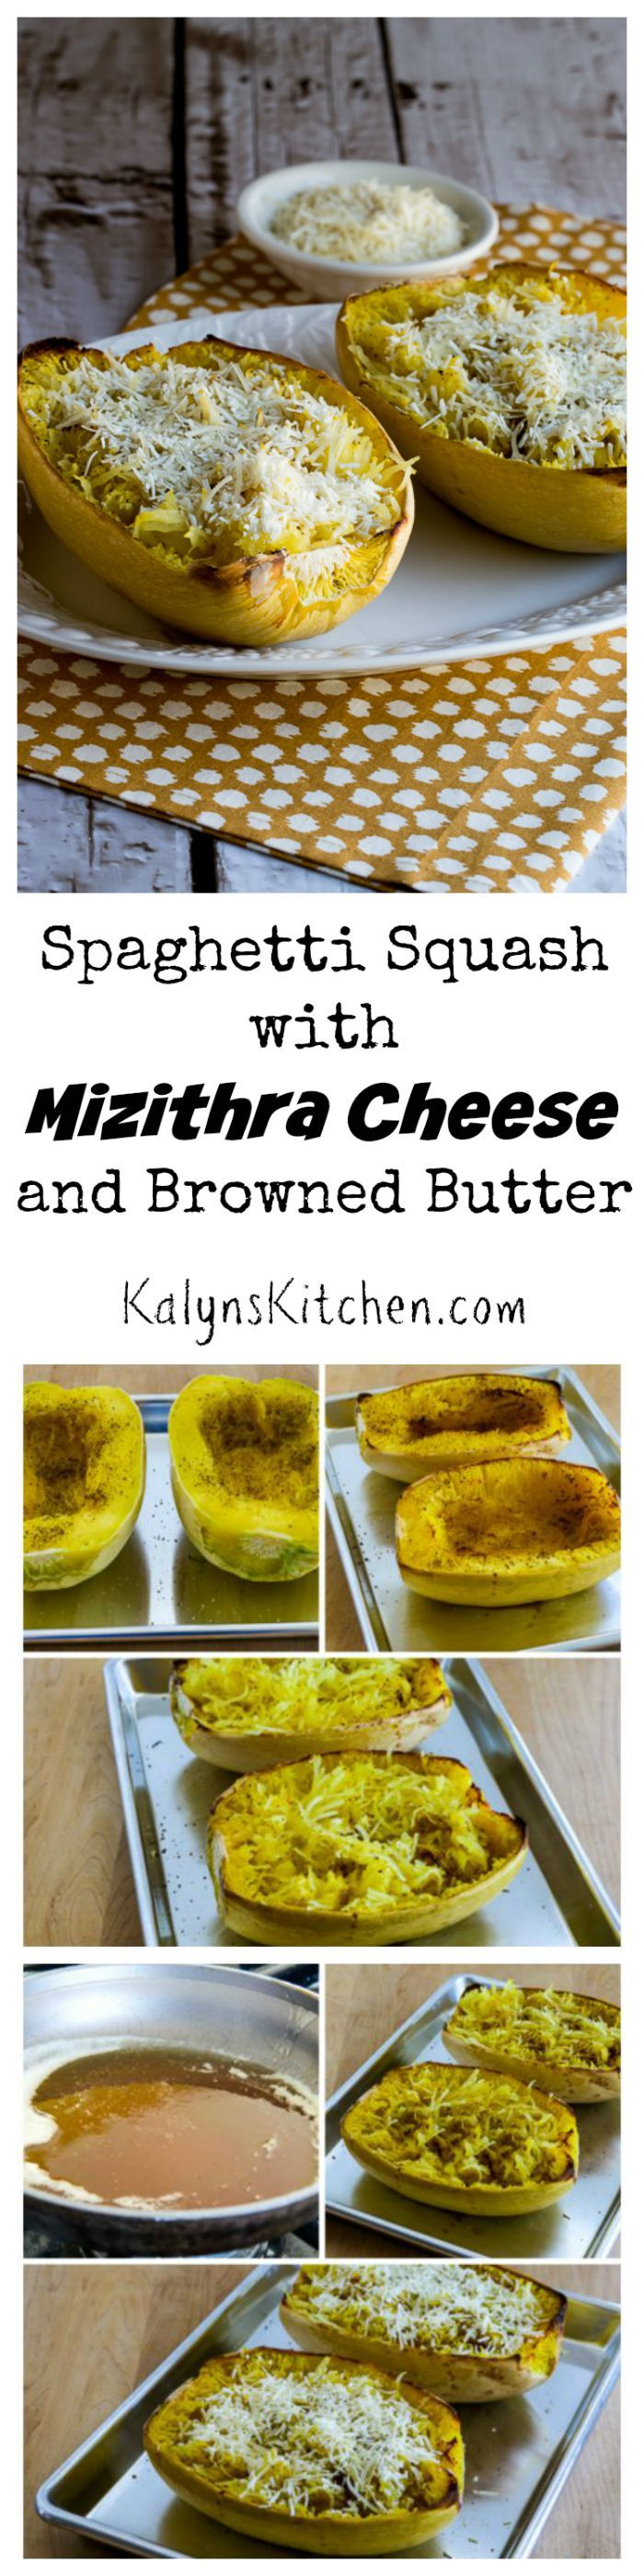 This Roasted Spaghetti Squash with Mizithra Cheese and Browned Butter is an amazing and easy side dish inspired by the famous dish at the Old Spaghetti Factory. We loved it and this version is low-carb and gluten-free. [from KalynsKitchen.com.}